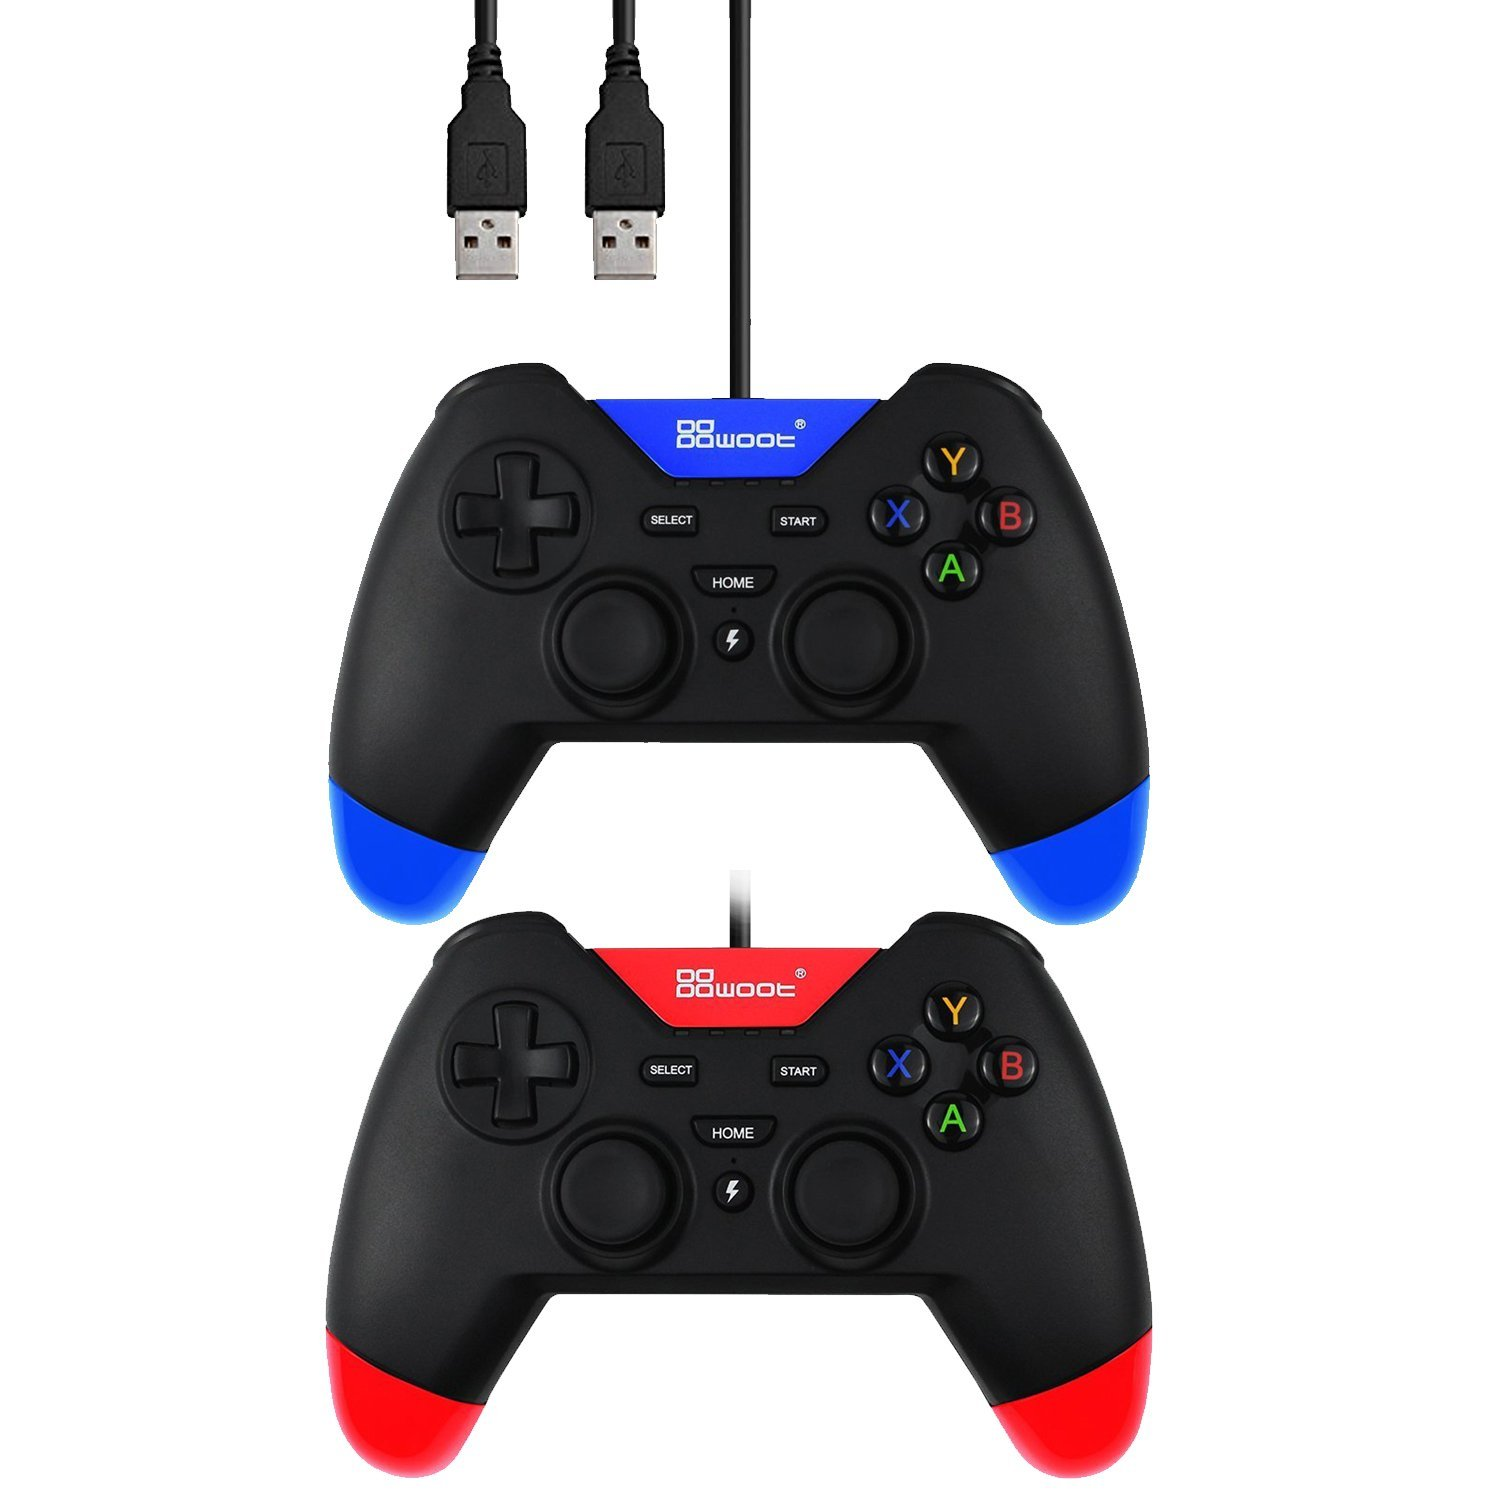 Mekela PC Controller Wired USB Gamepad Joystick for Playstation 3 PS3 PSVITA TV Box Steam Android Windows XP 7 8 10 with Dual-Vibration Tubro(Blue and Red)